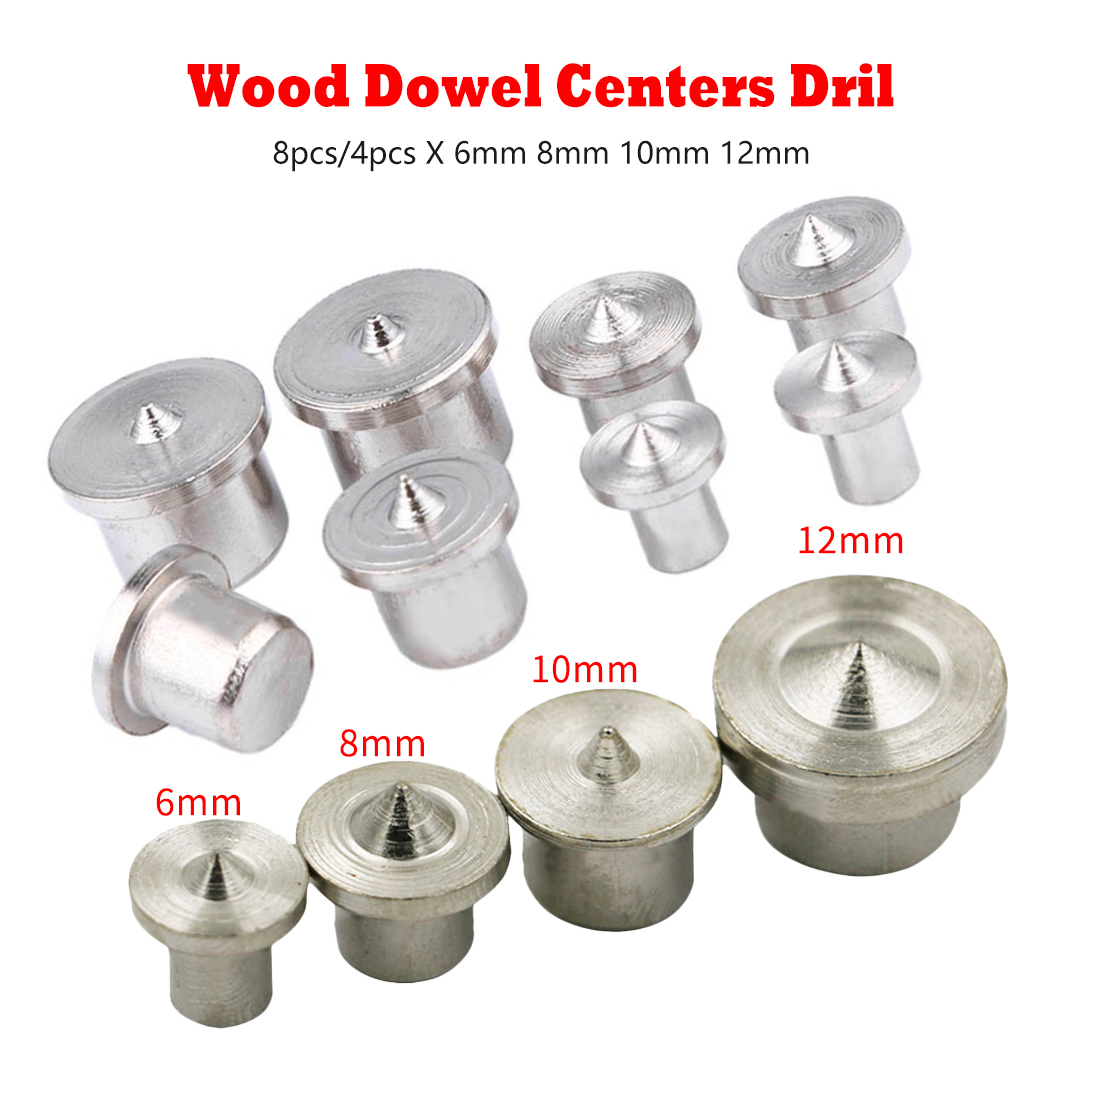 8pcs/4pcs Dowel Pins Center Point Drill 6mm 8mm10mm 12mm Woodworking Dowel Tenon Center Drill For Woodworking Solid